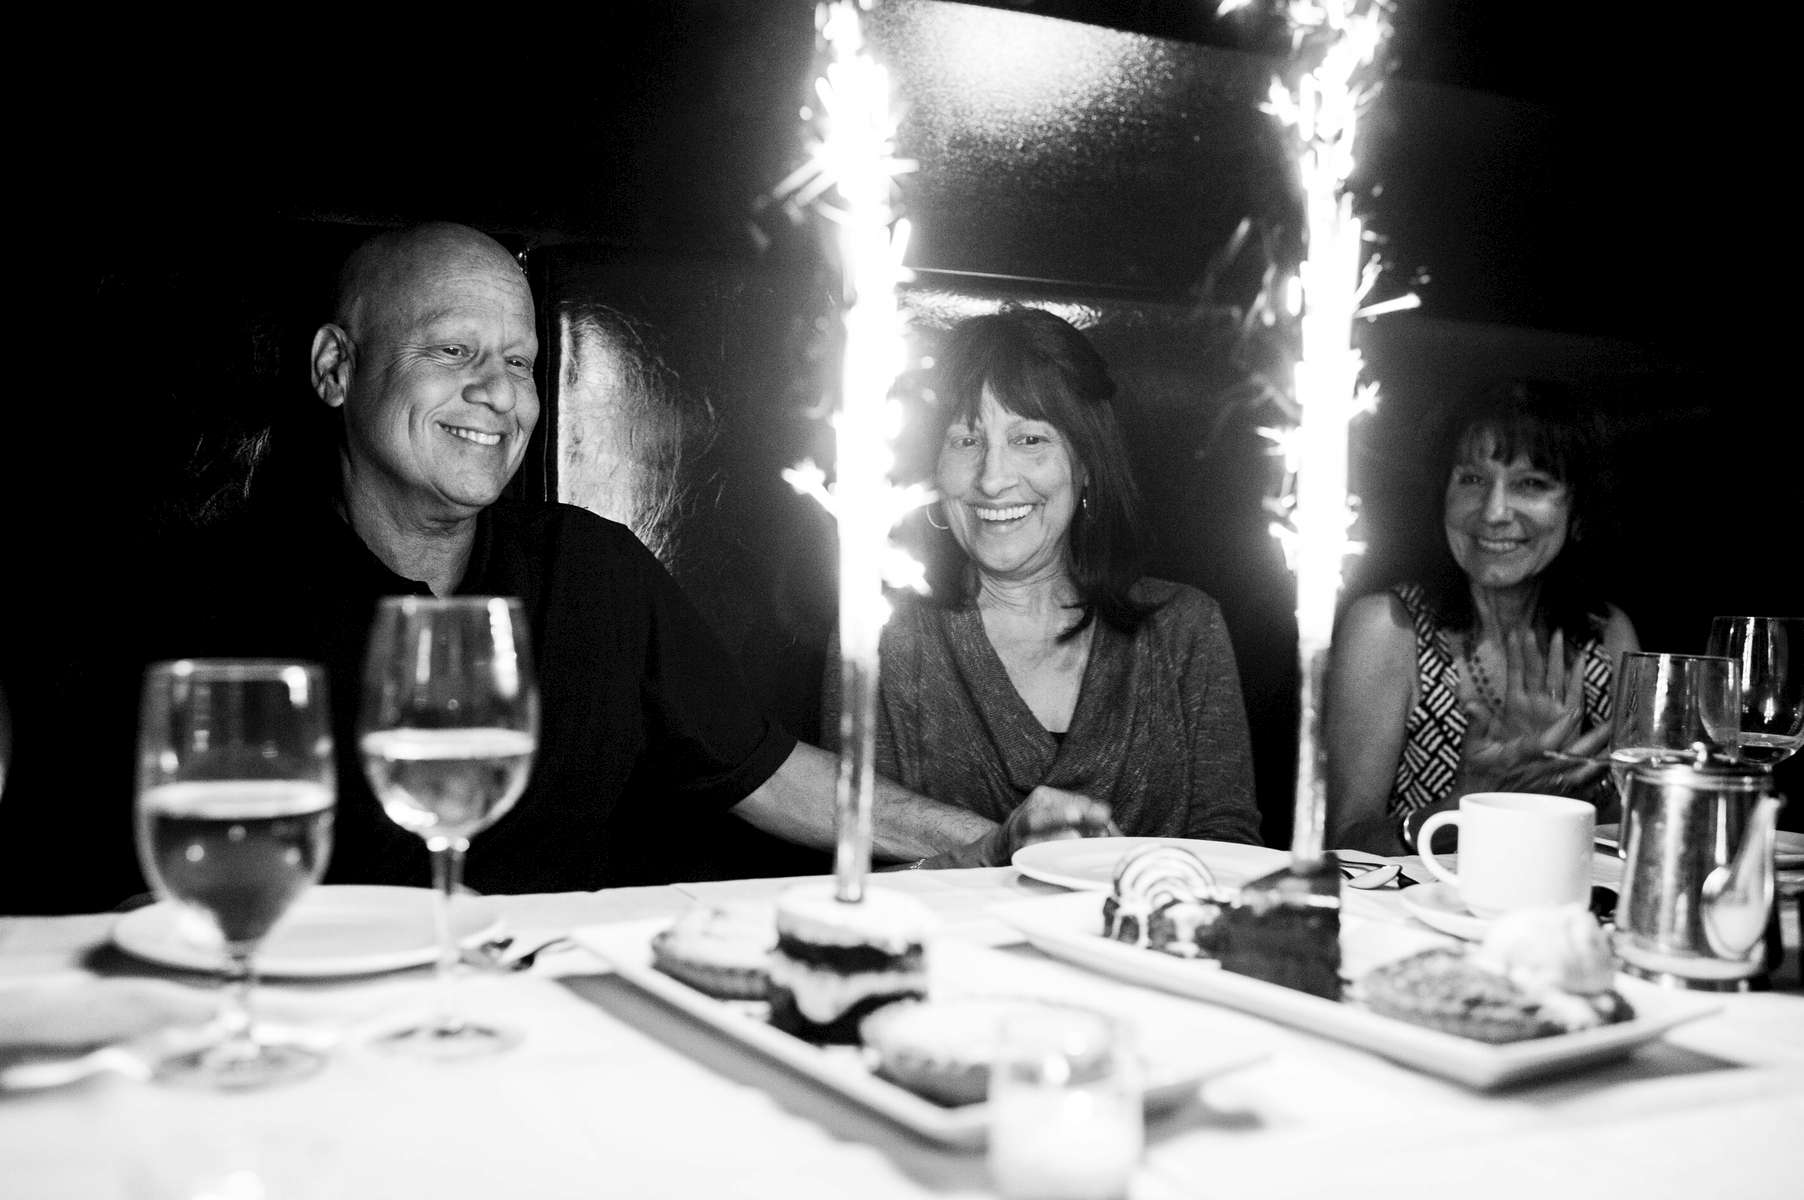 Along side friends and family, Howie celebrates his 58th birthday, an event he did not think he would make it to six months earlier when diagnosed with metastatic pancreatic cancer. Manhattan, New York. June 2013.